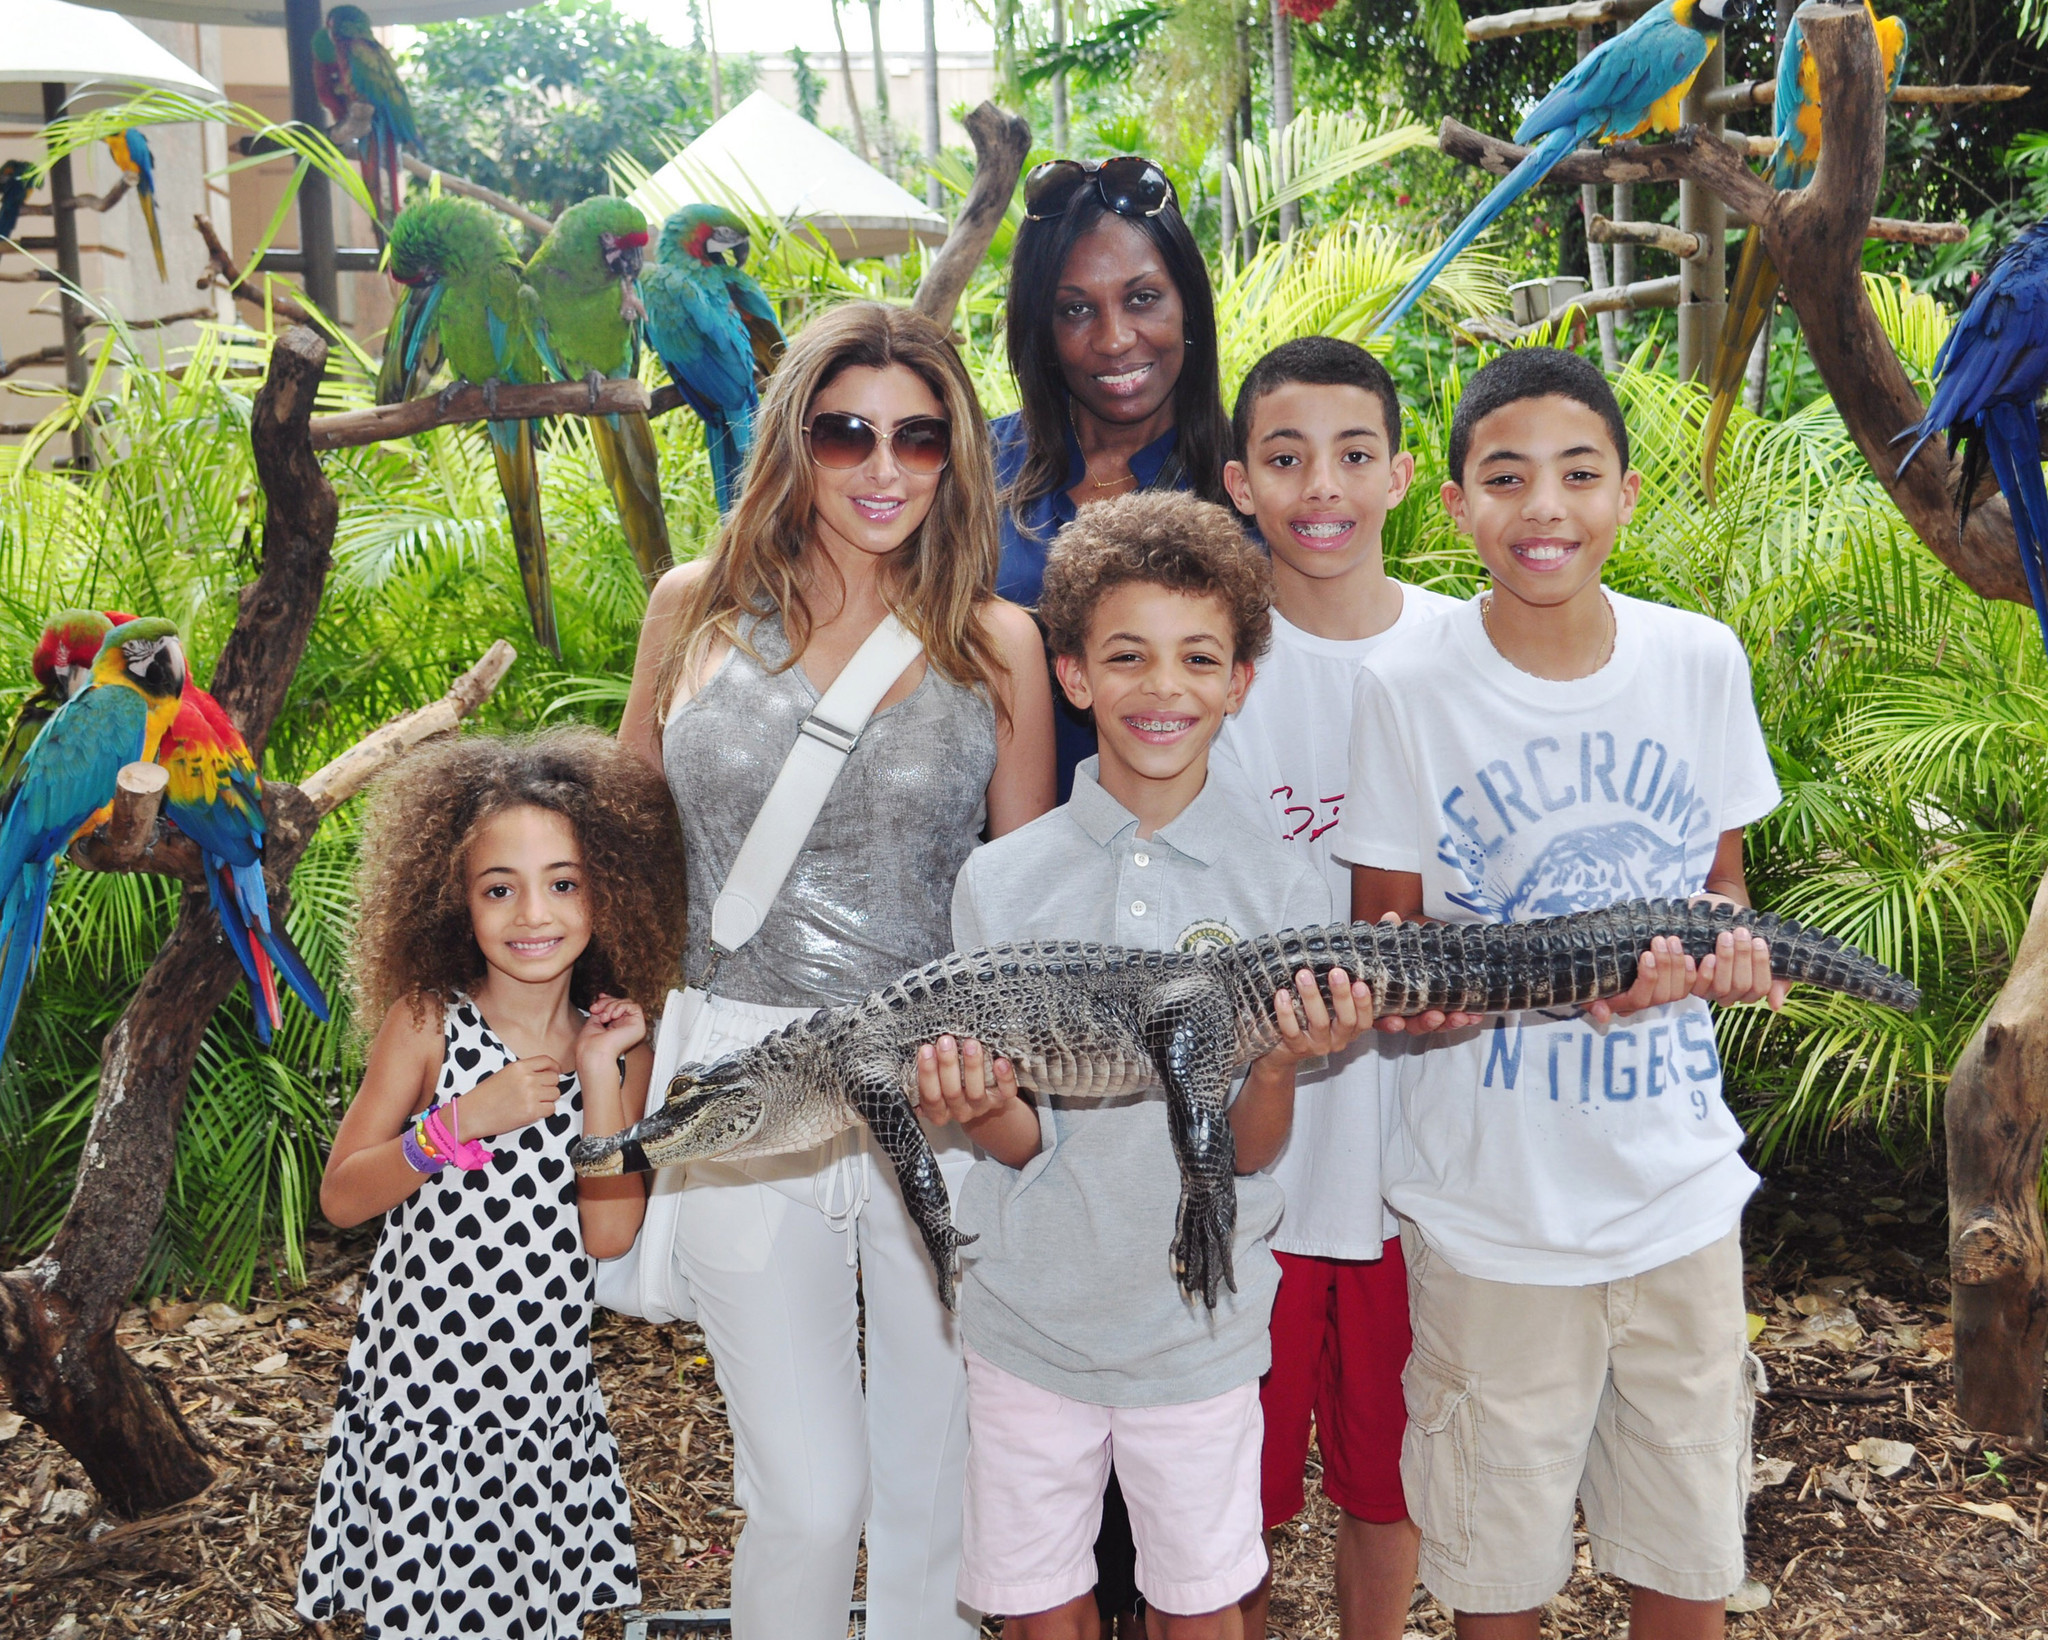 Celeb-spotting around South Florida - Larsa Pippen